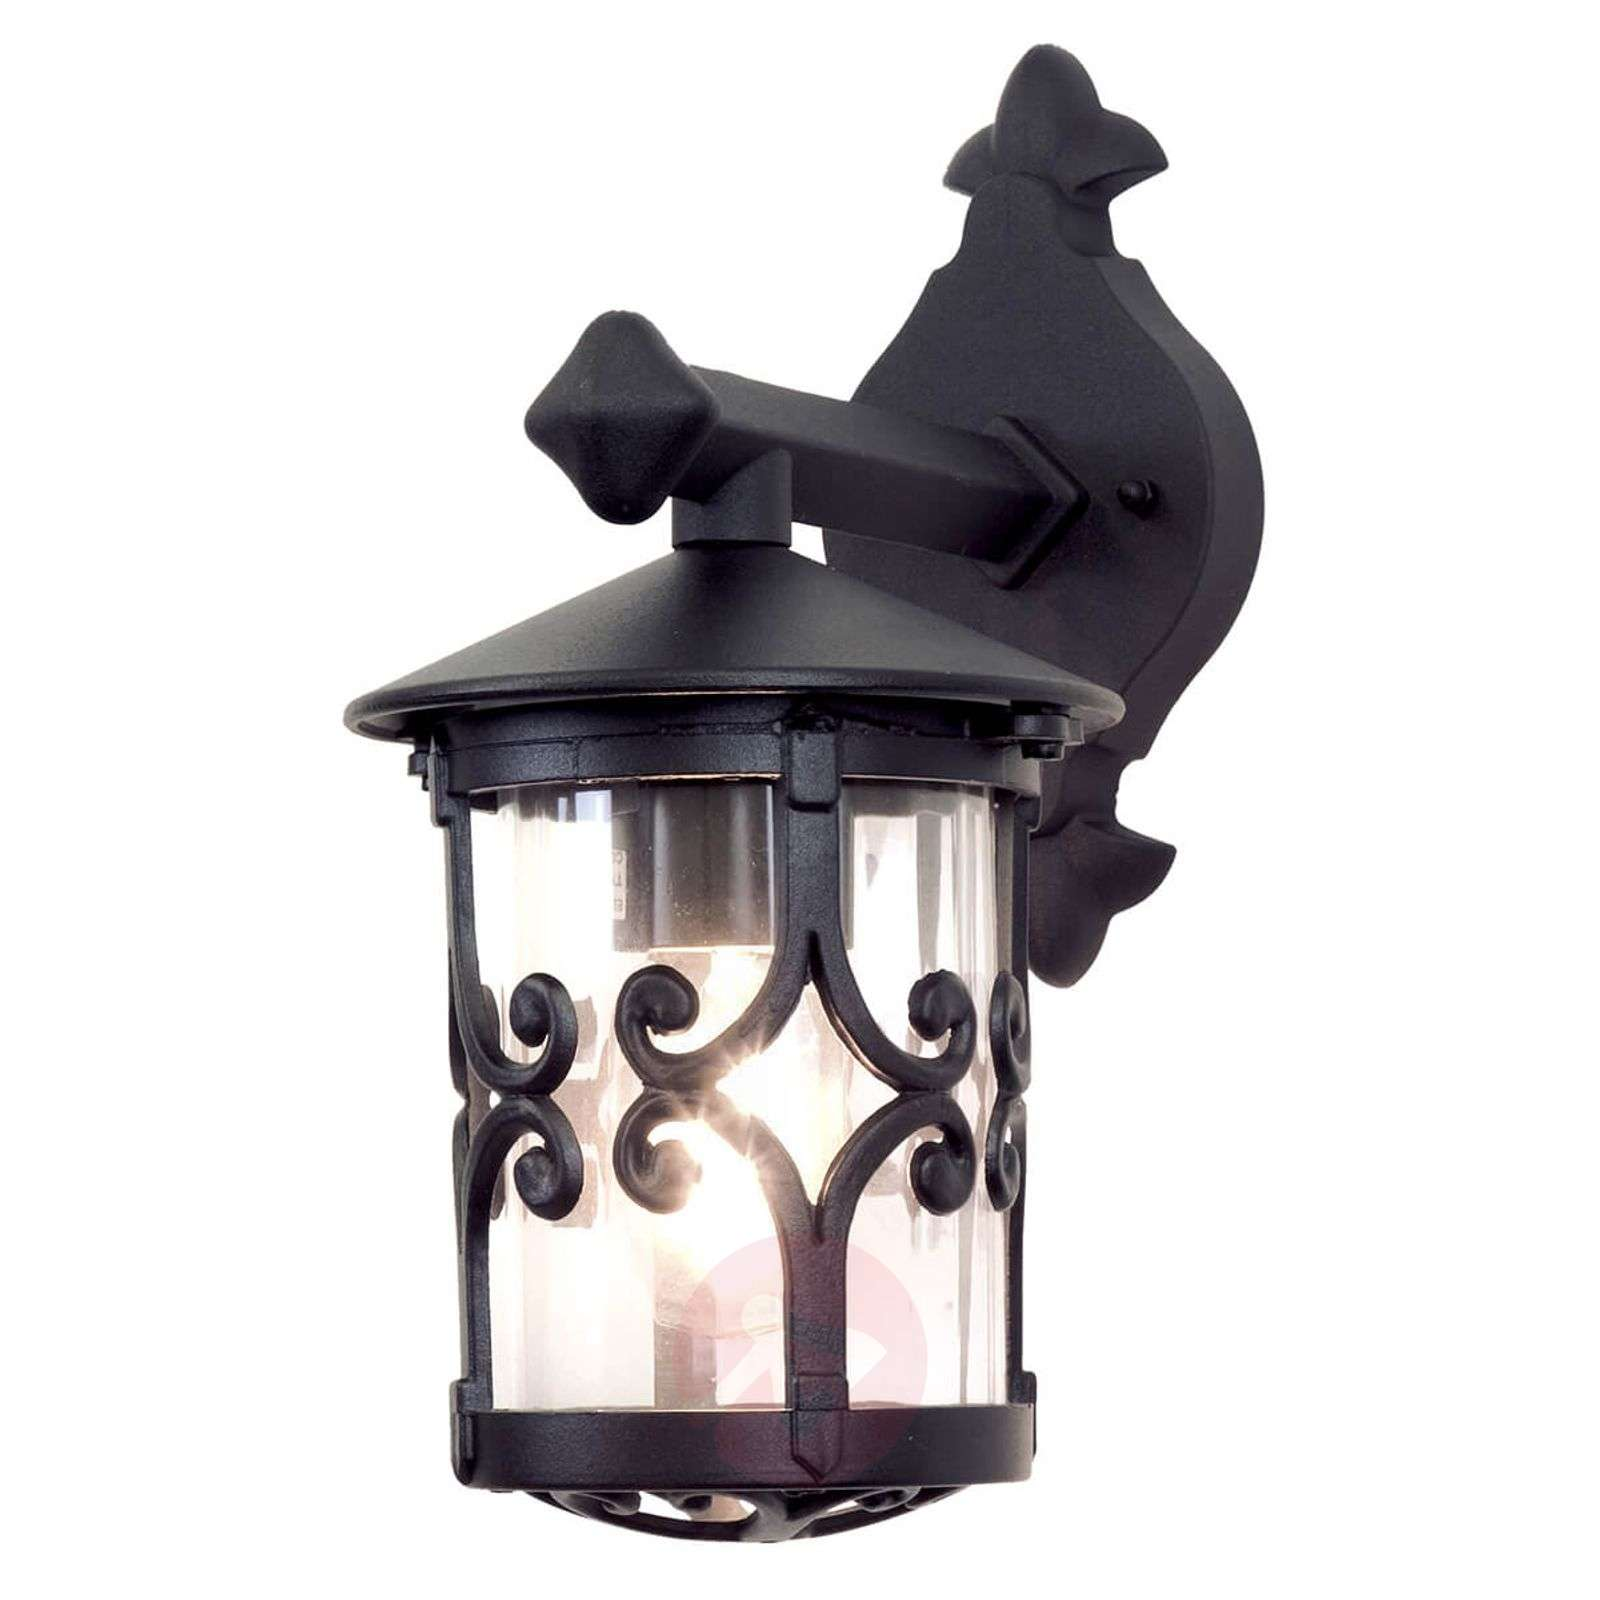 Robust Hereford outdoor wall lamp-3048692-01